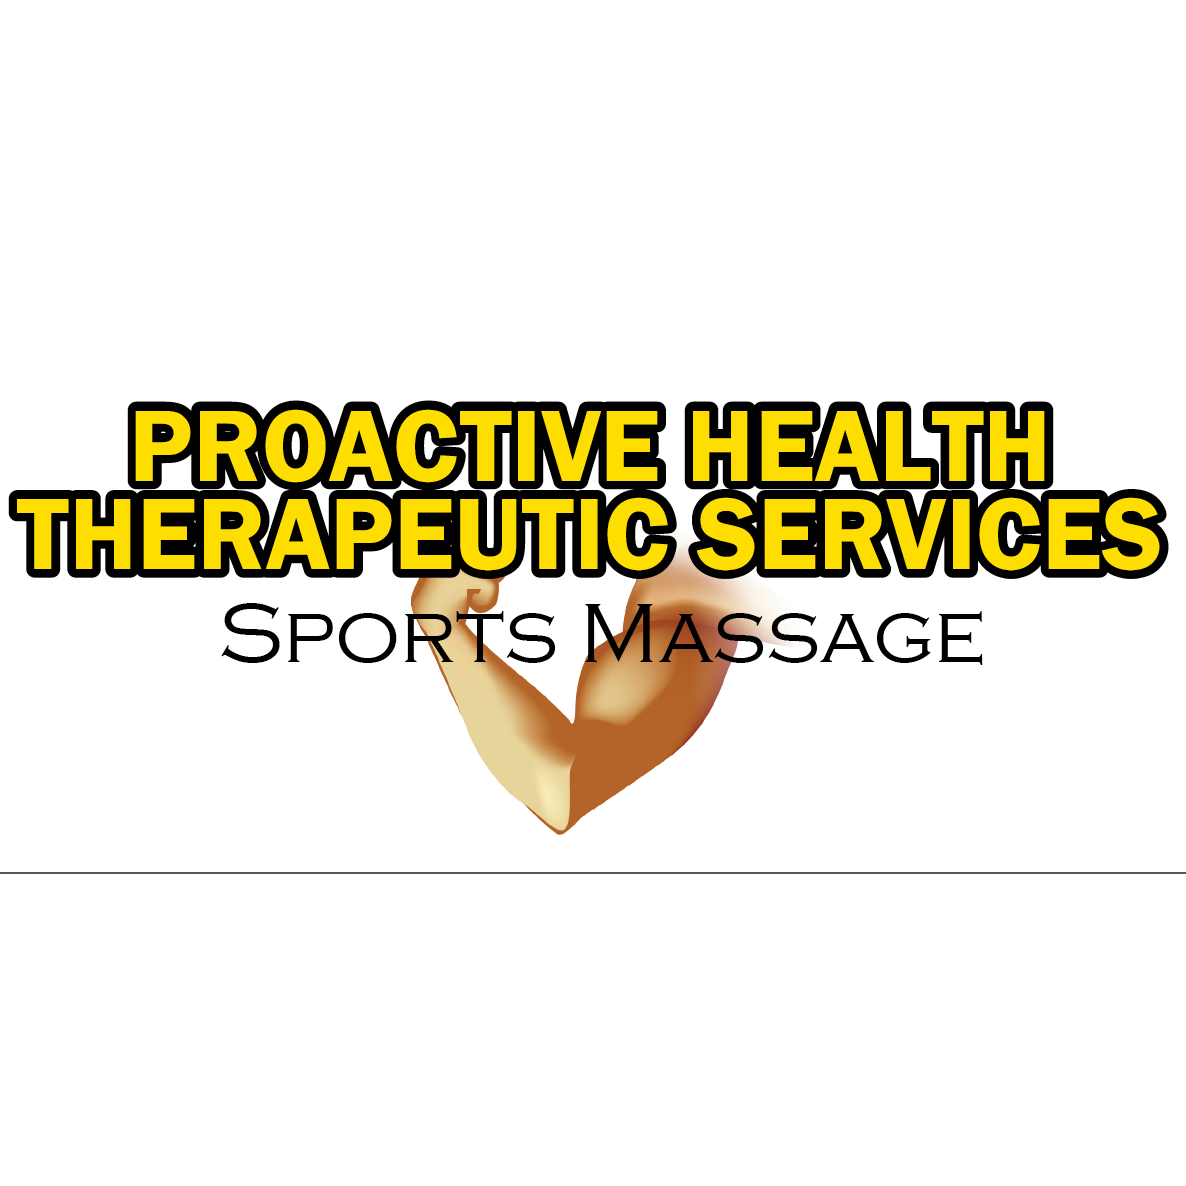 image of the Proactive Health Therapeutic Services